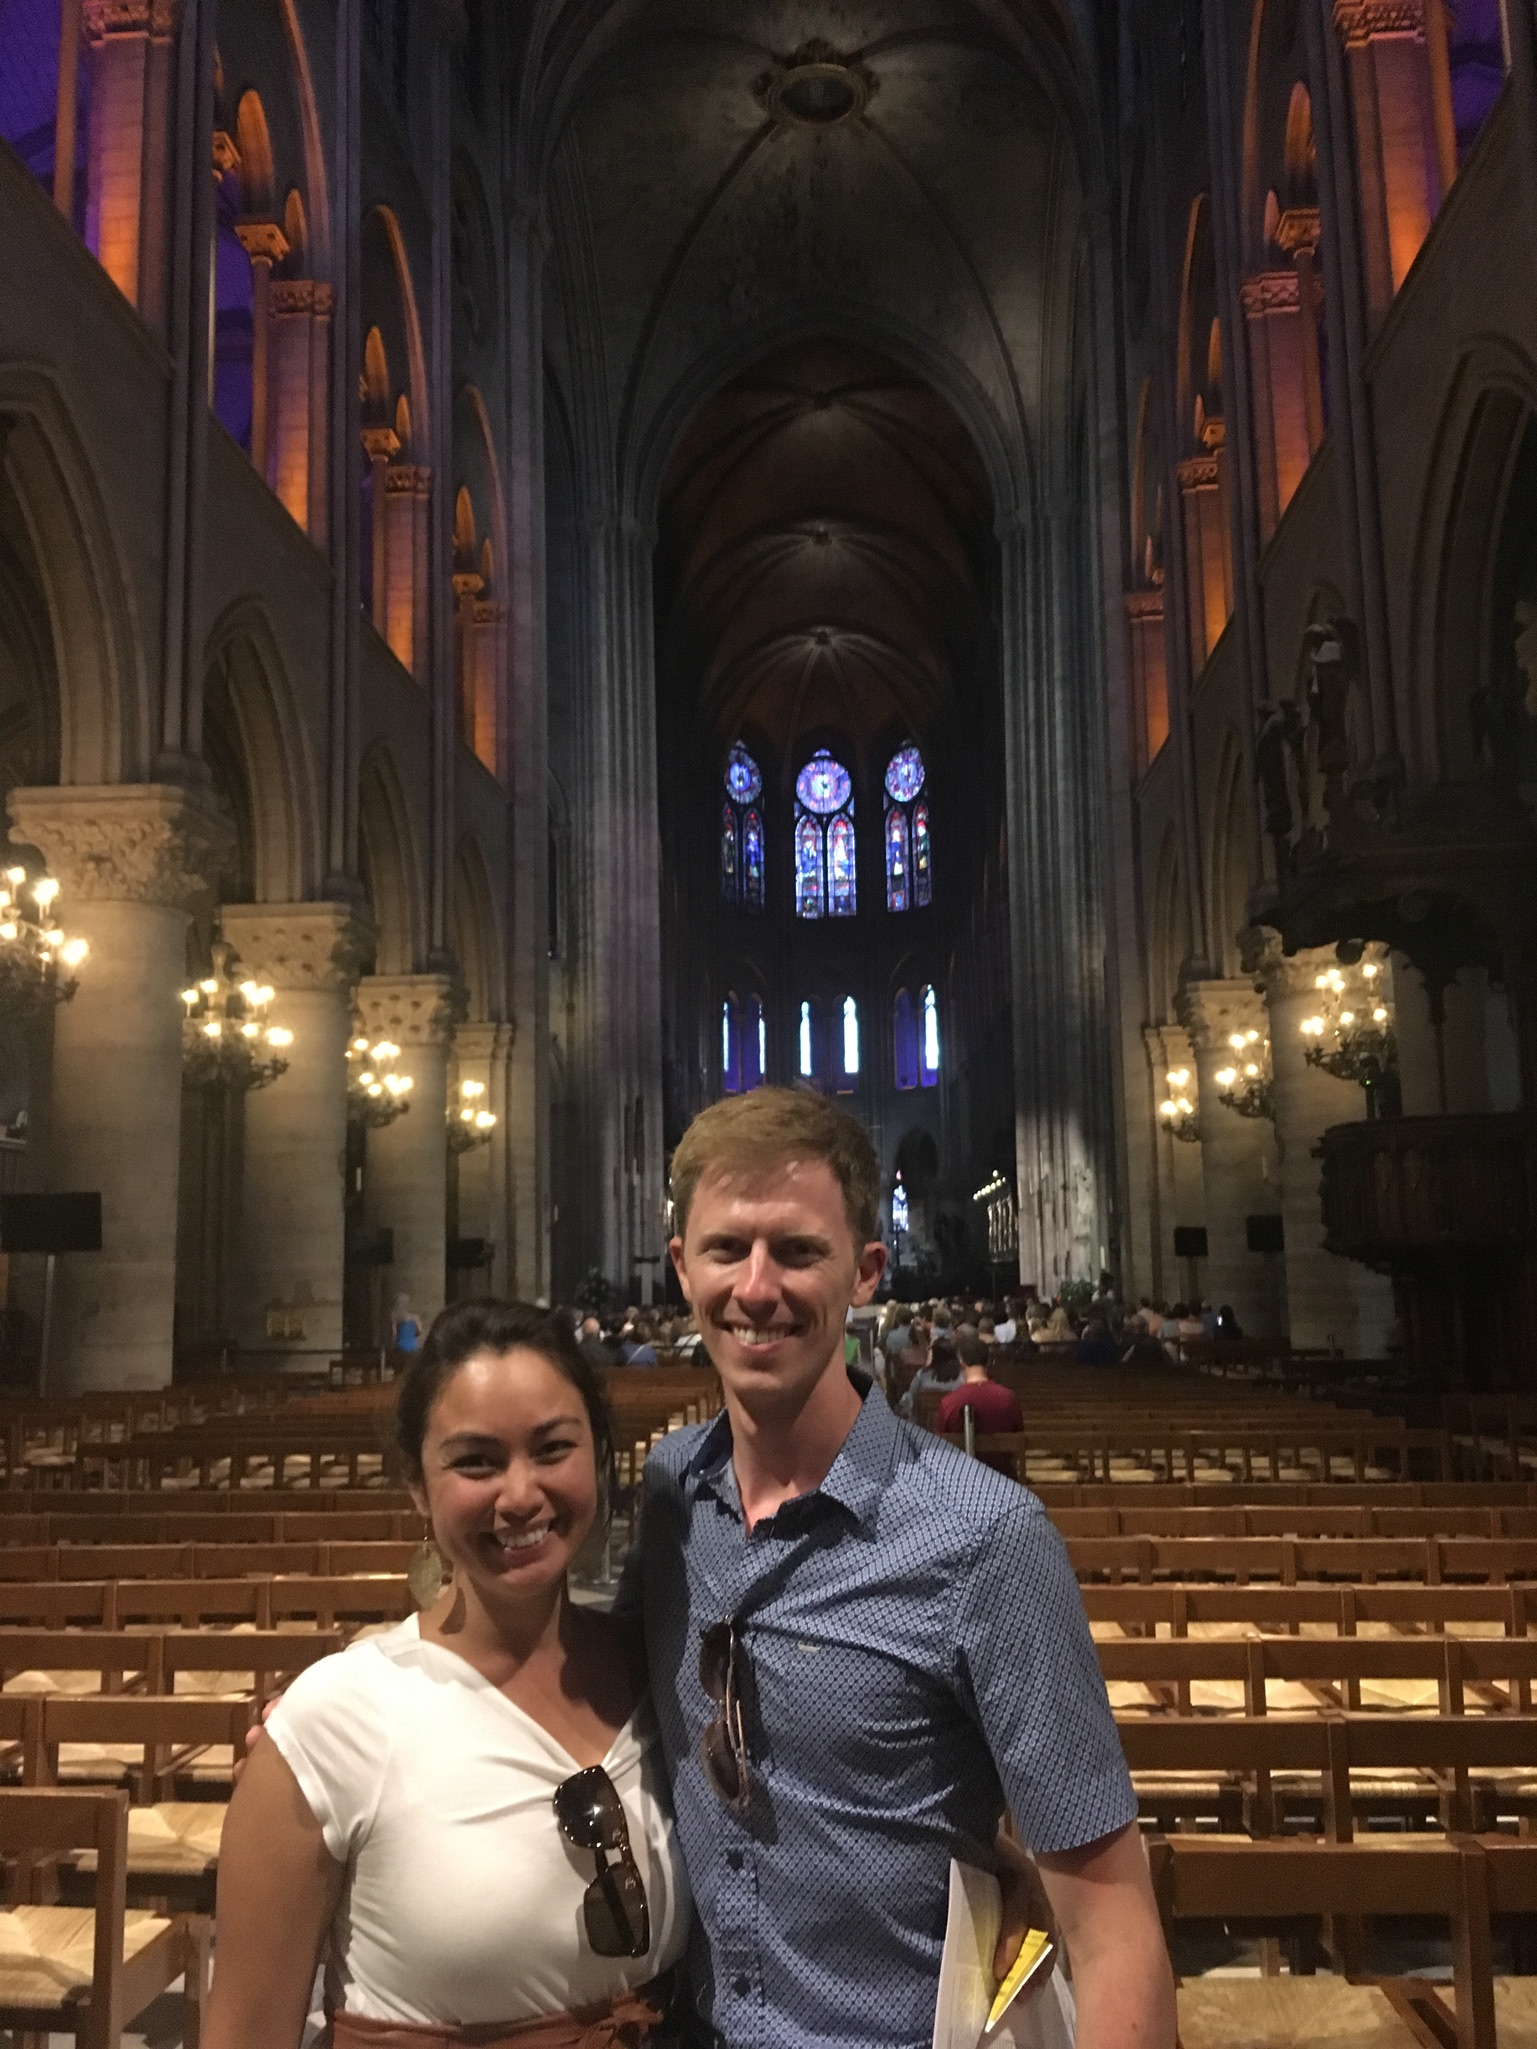 Scott posed with Naomi inside the cathedral.